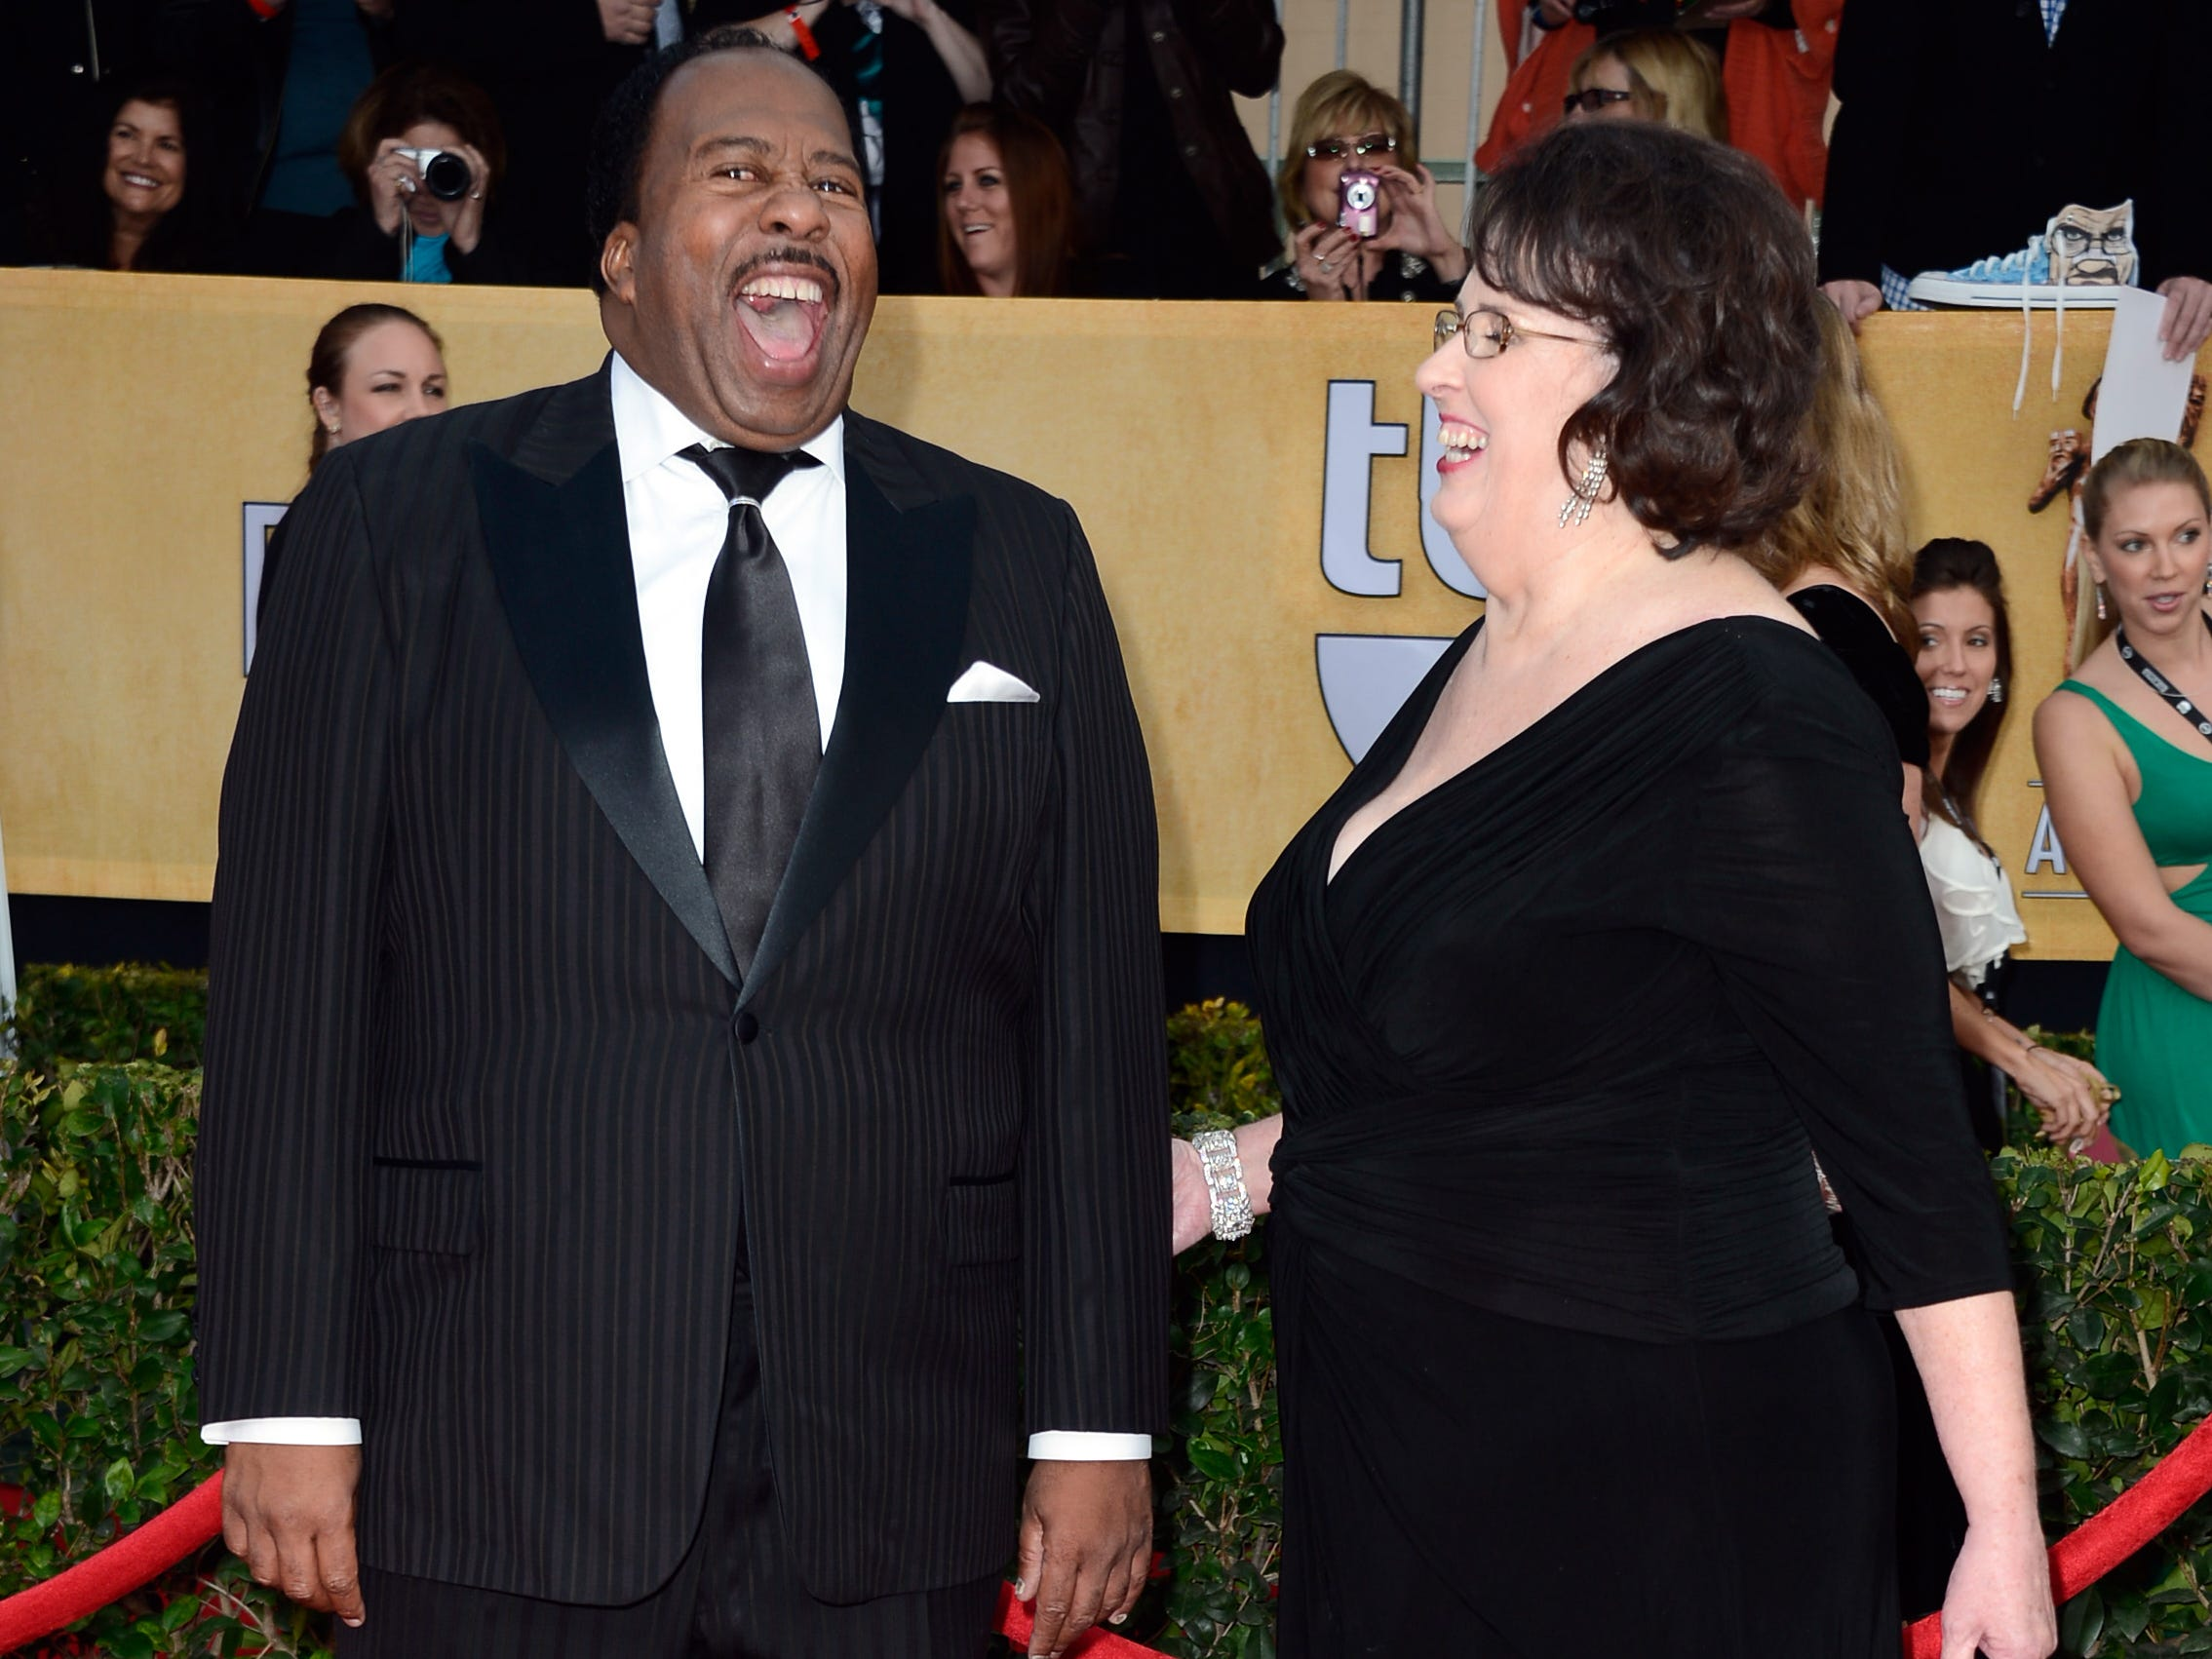 """Actors Leslie David Baker, left, and Phyllis Smith arrive at the 19th Annual Screen Actors Guild Awards held at The Shrine Auditorium on January 27, 2013 in Los Angeles, California. Baker played Stanley on NBC's """"The Office"""" and Smith played Phyllis."""